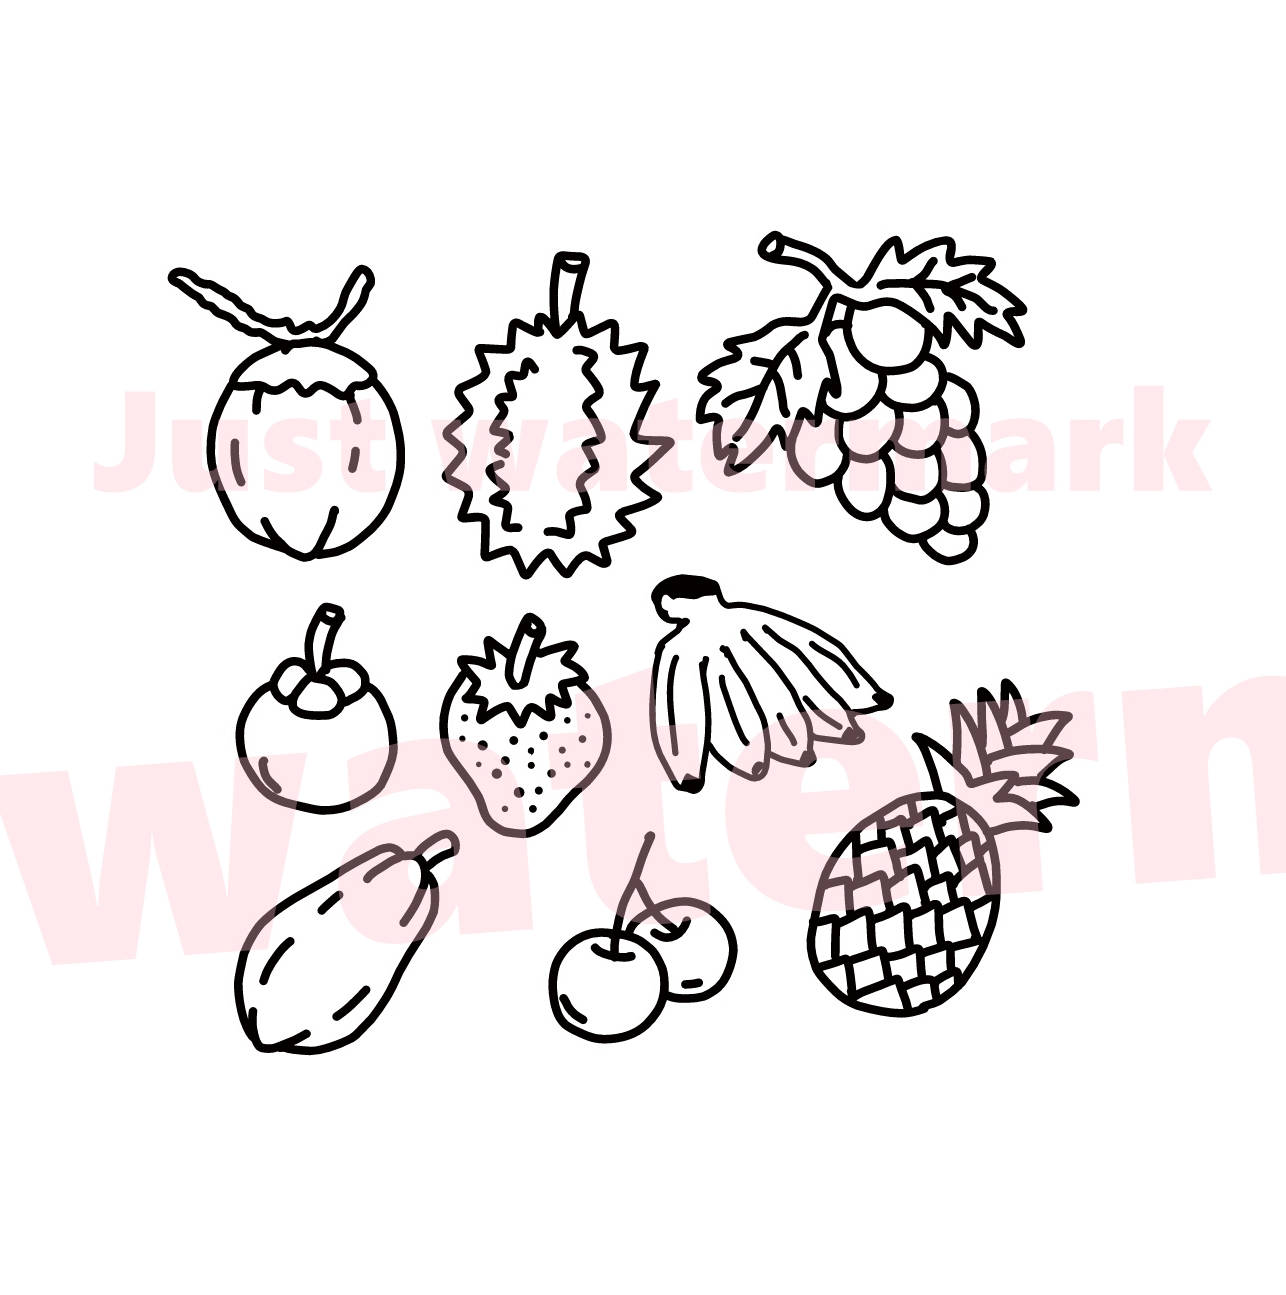 Durian Drawing At Getdrawings Com Free For Personal Use Durian